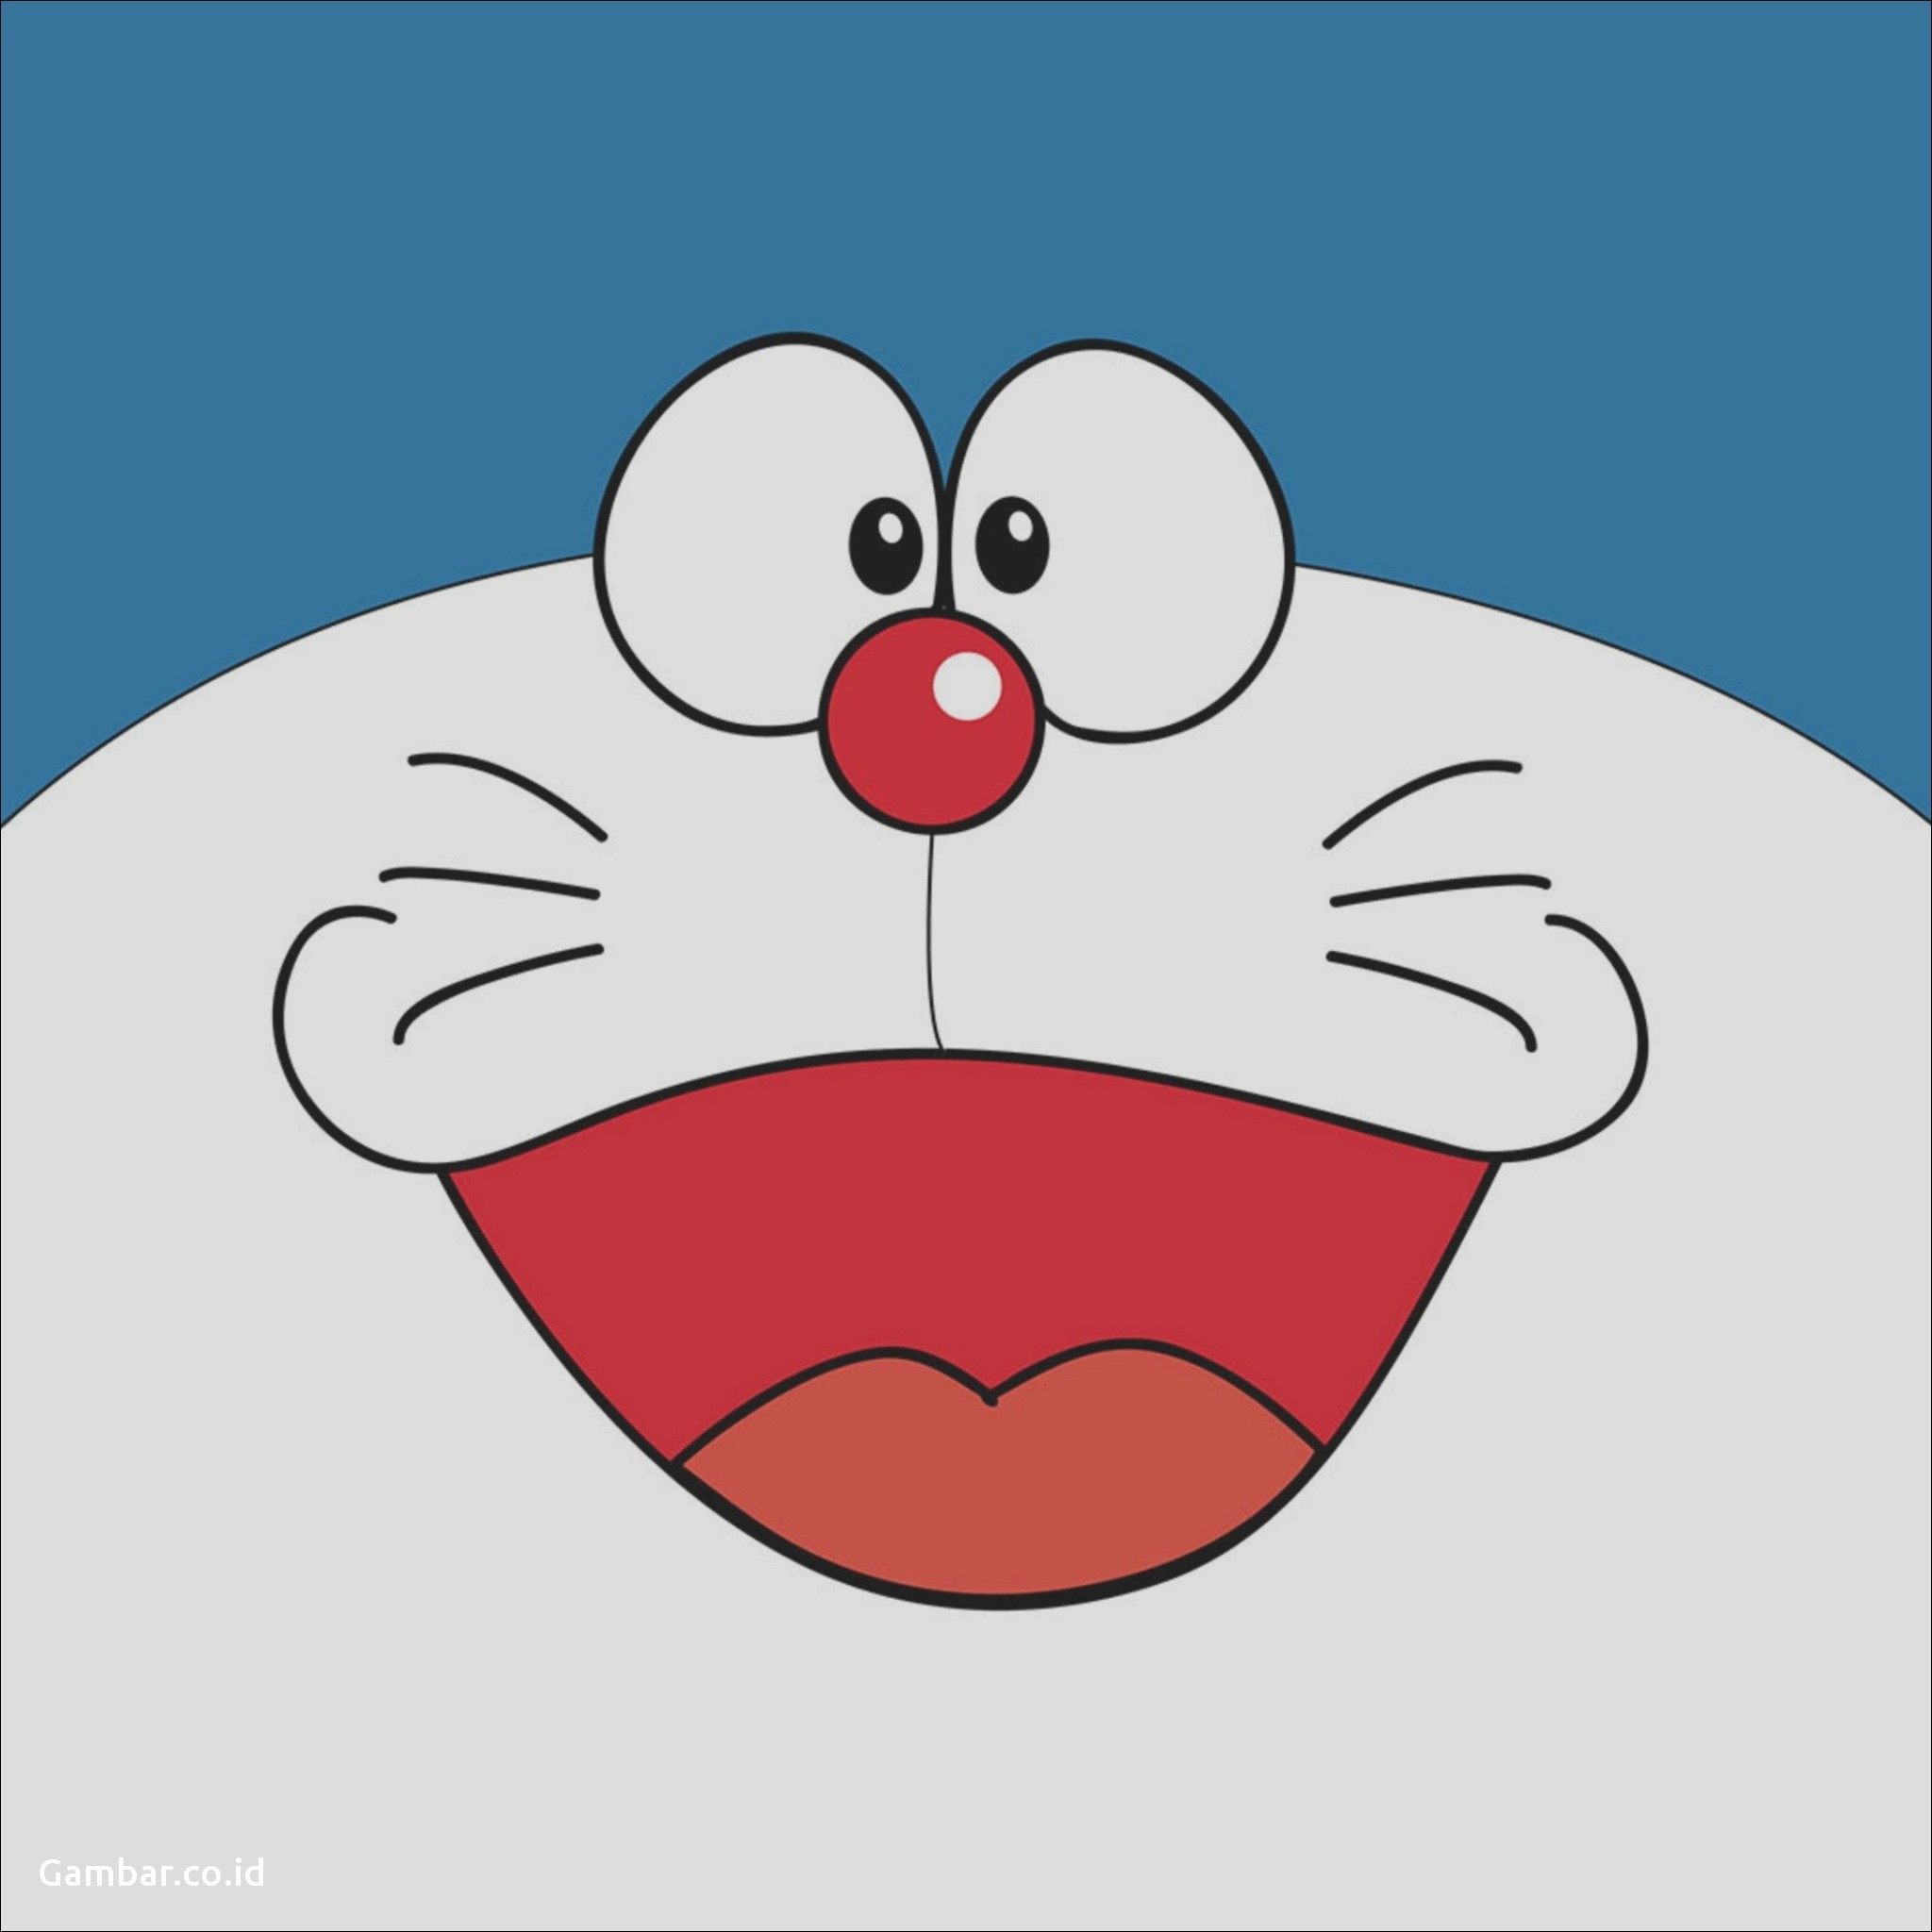 Download Gambar Wallpaper Doraemon Doraemon Tap to See More Daftar Gambar Keren Doraemon